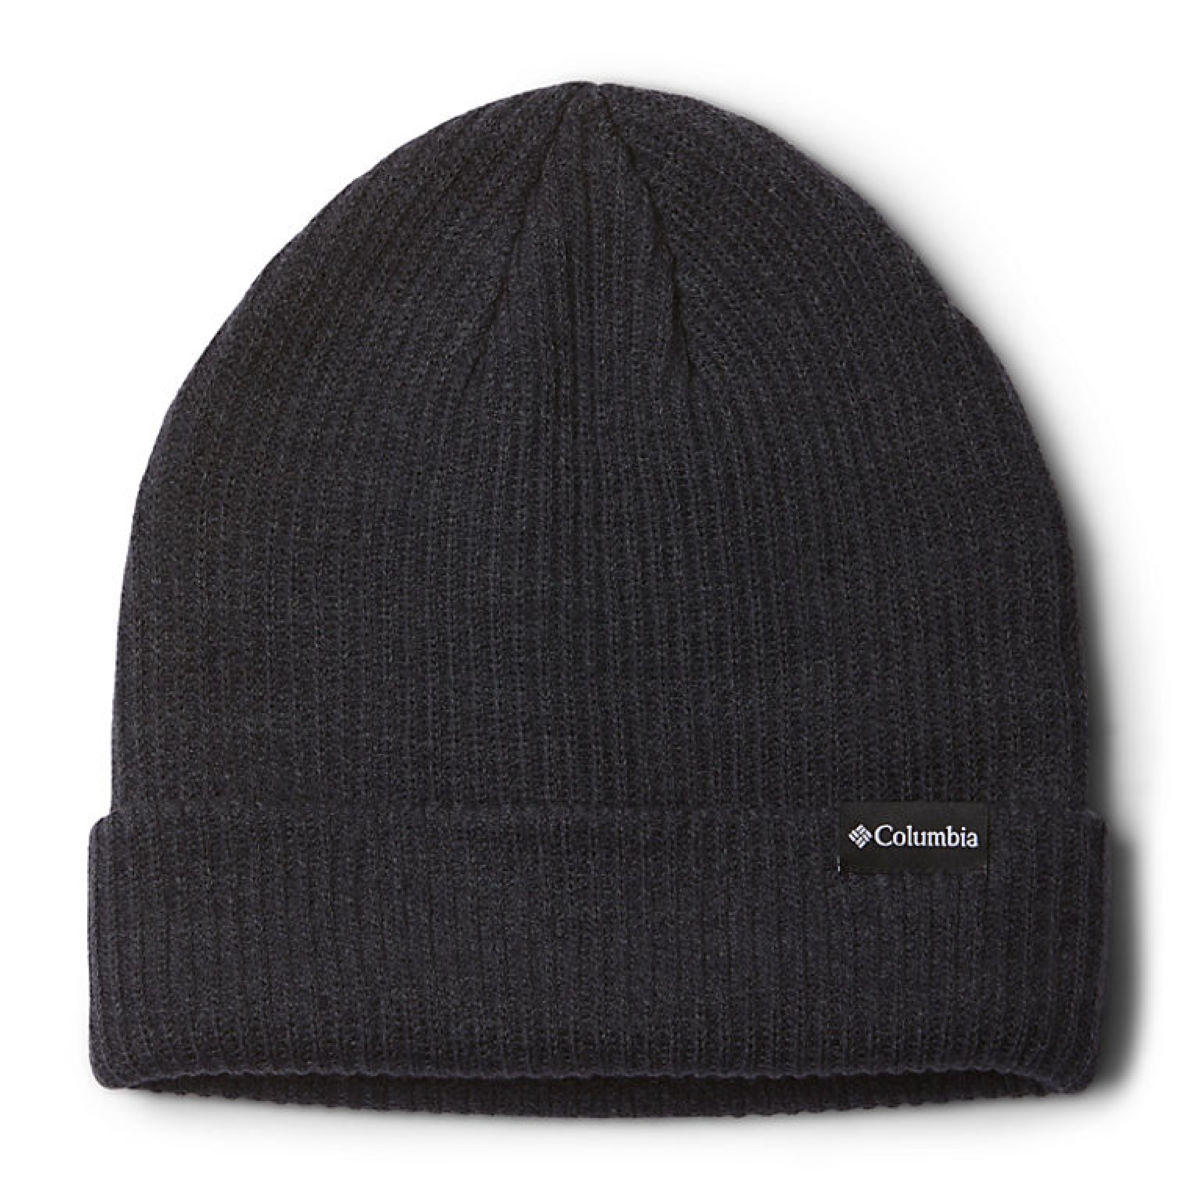 Columbia Columbia Lost Lager™ Beanie   Beanies